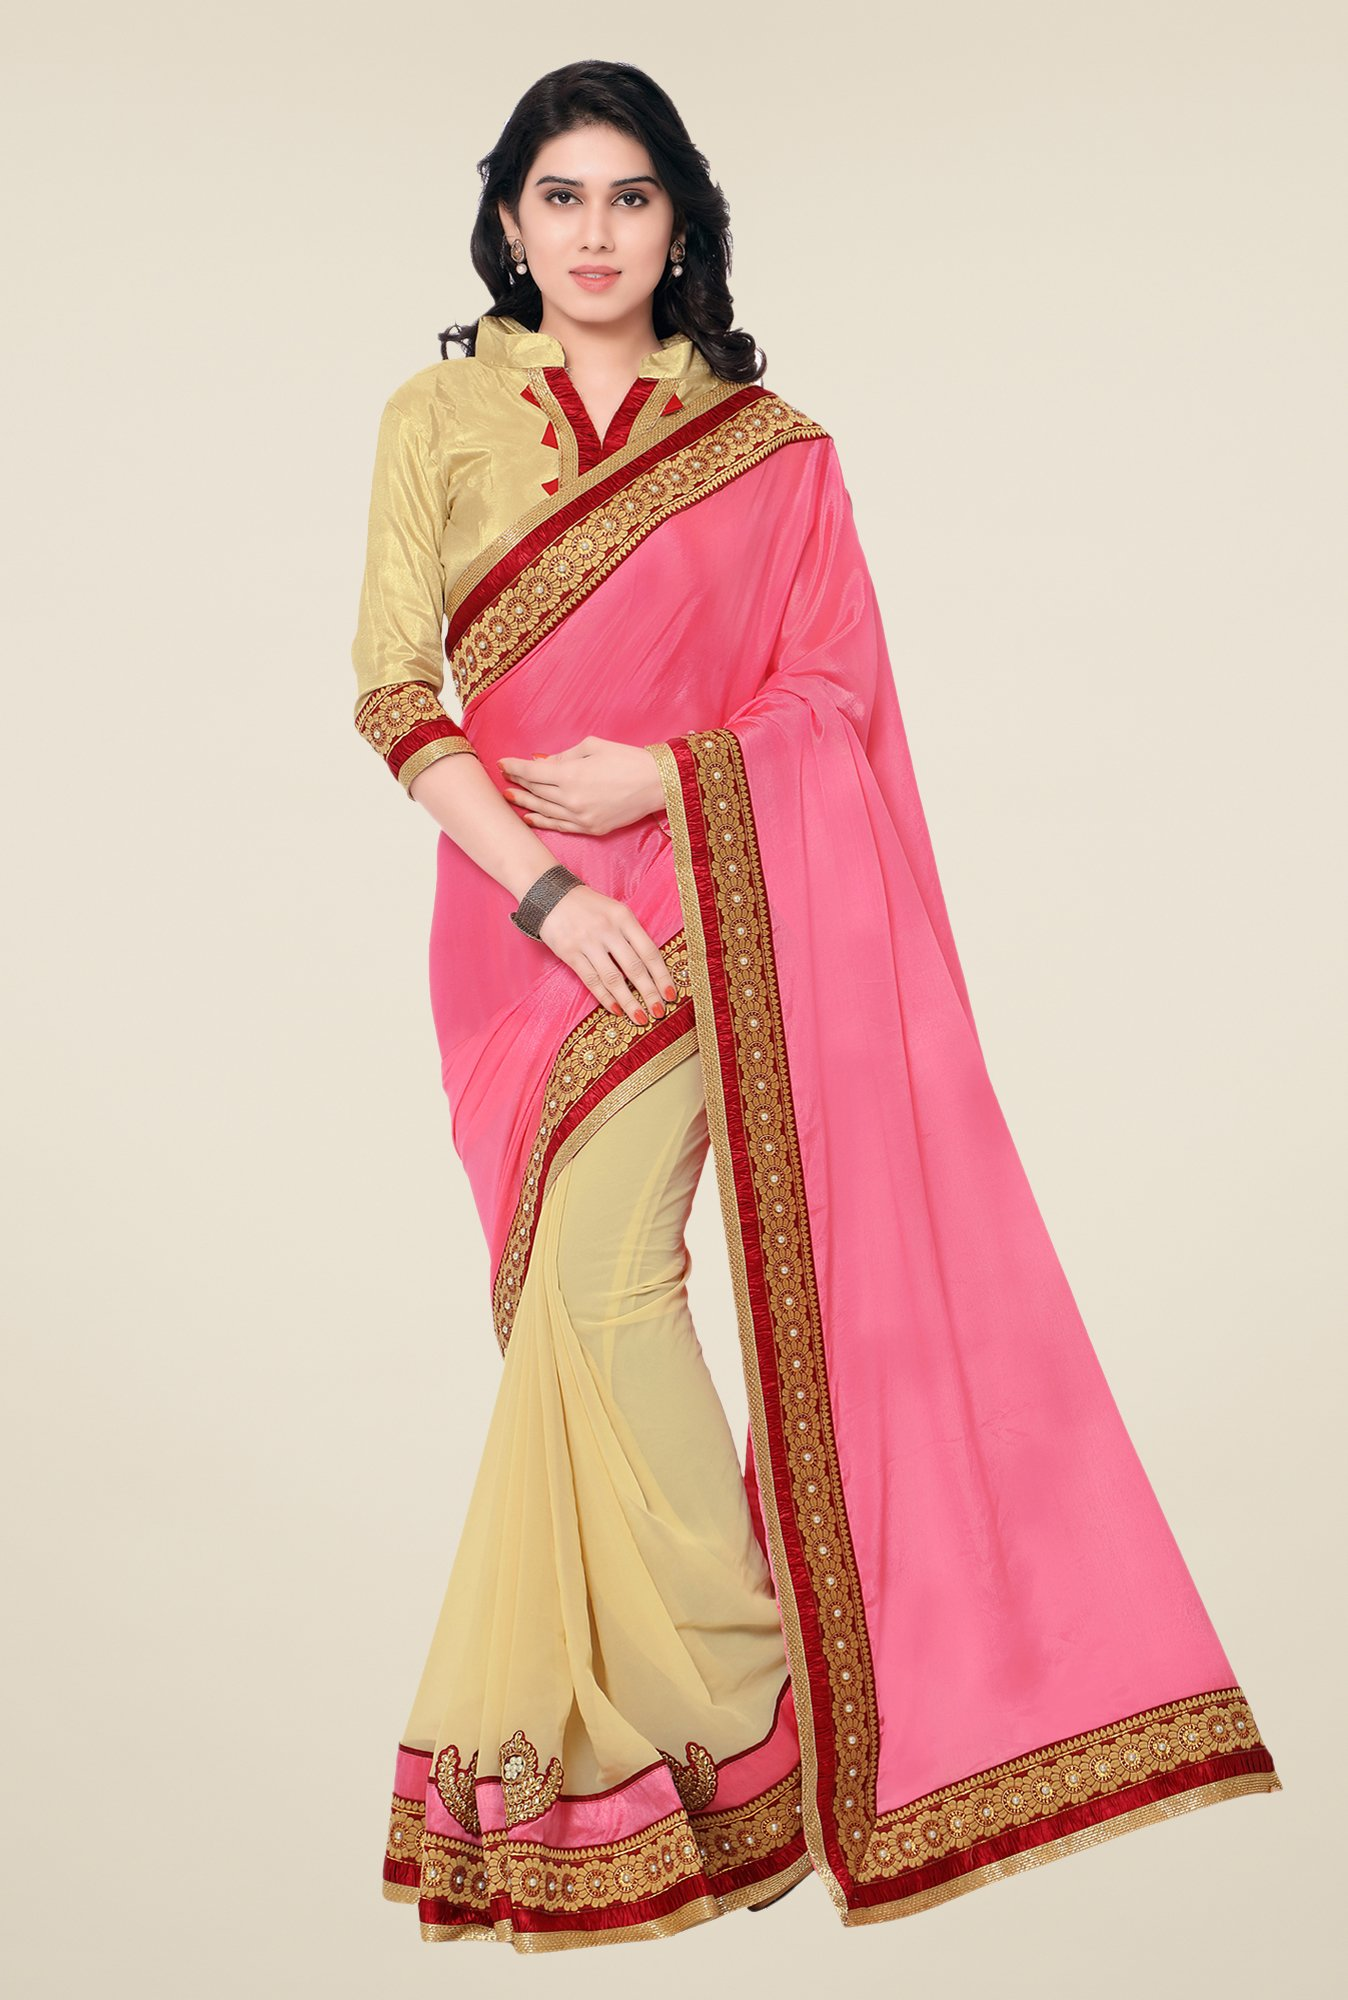 Shonaya Pink & Beige Chinnon & Georgette Embroidered Saree